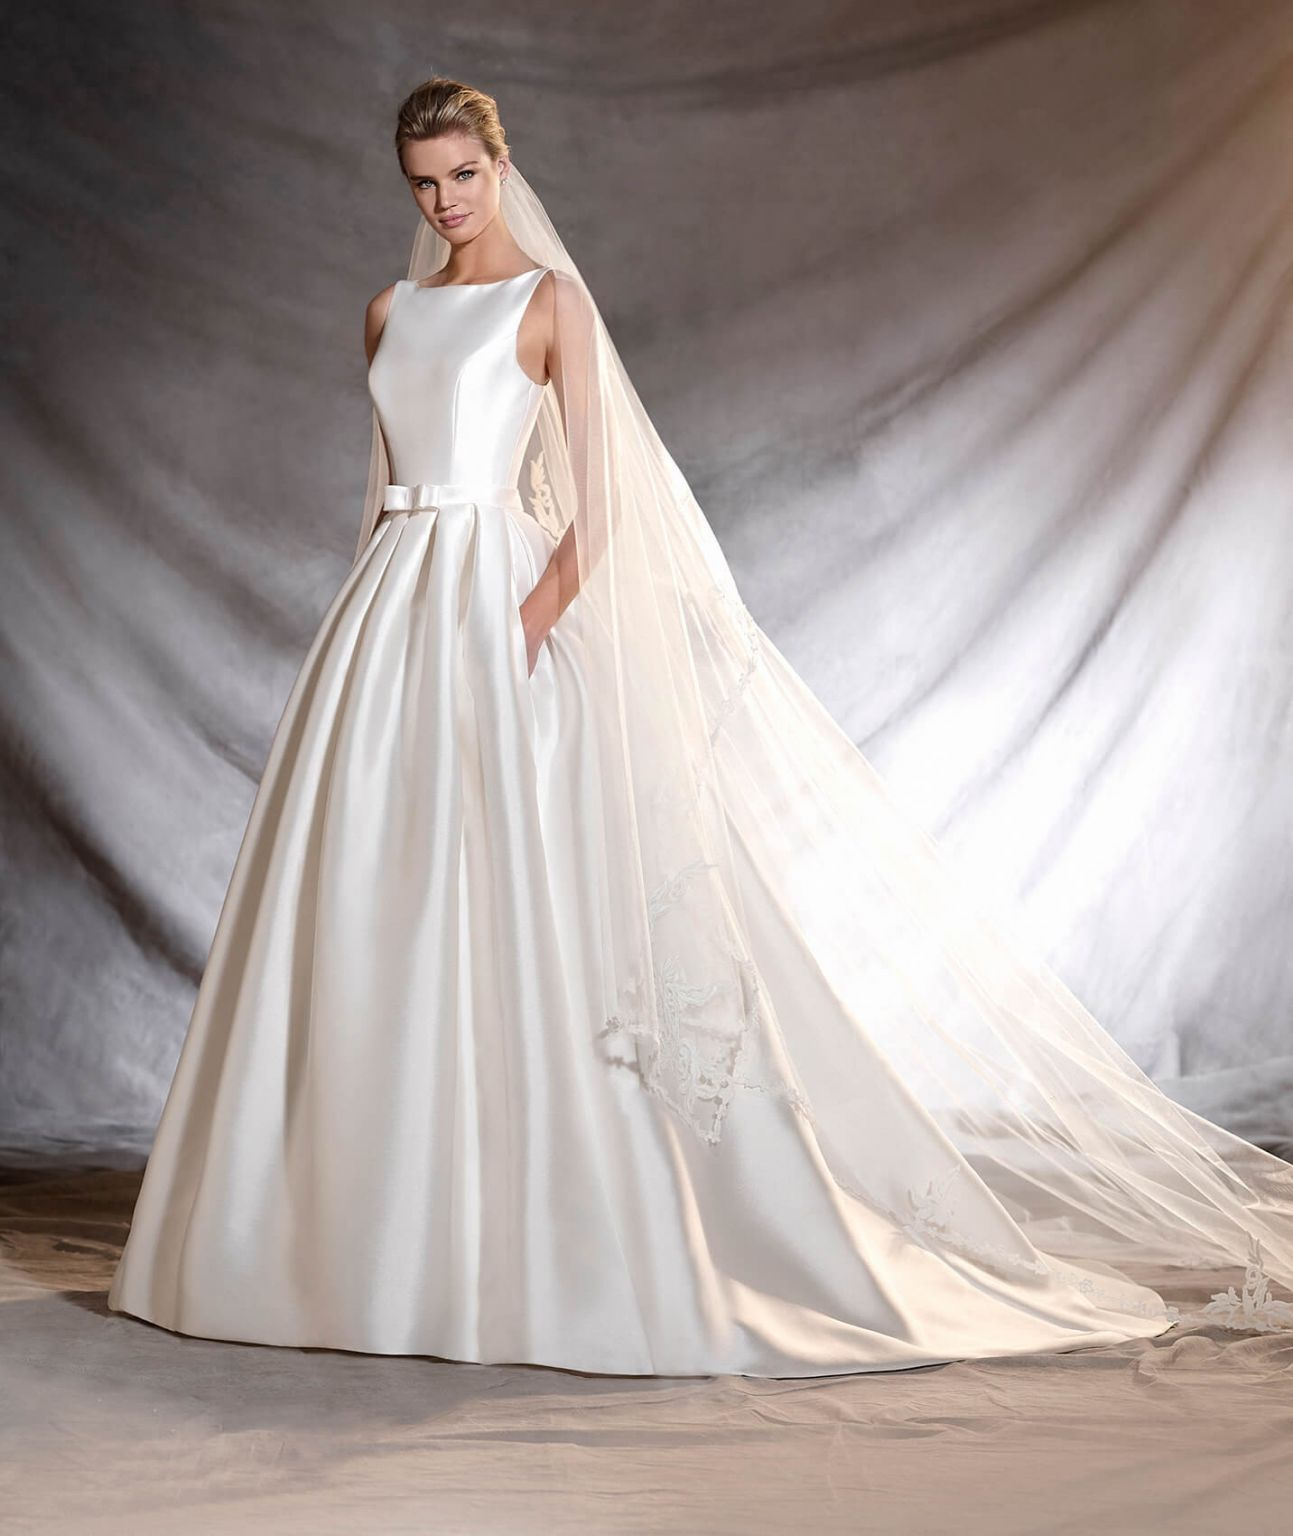 Hey Tim I Just Looked At Some Dresses Legit Casually And This Is Just Like The Black One But White Pronovias Wedding Dress Wedding Dresses Used Wedding Dresses